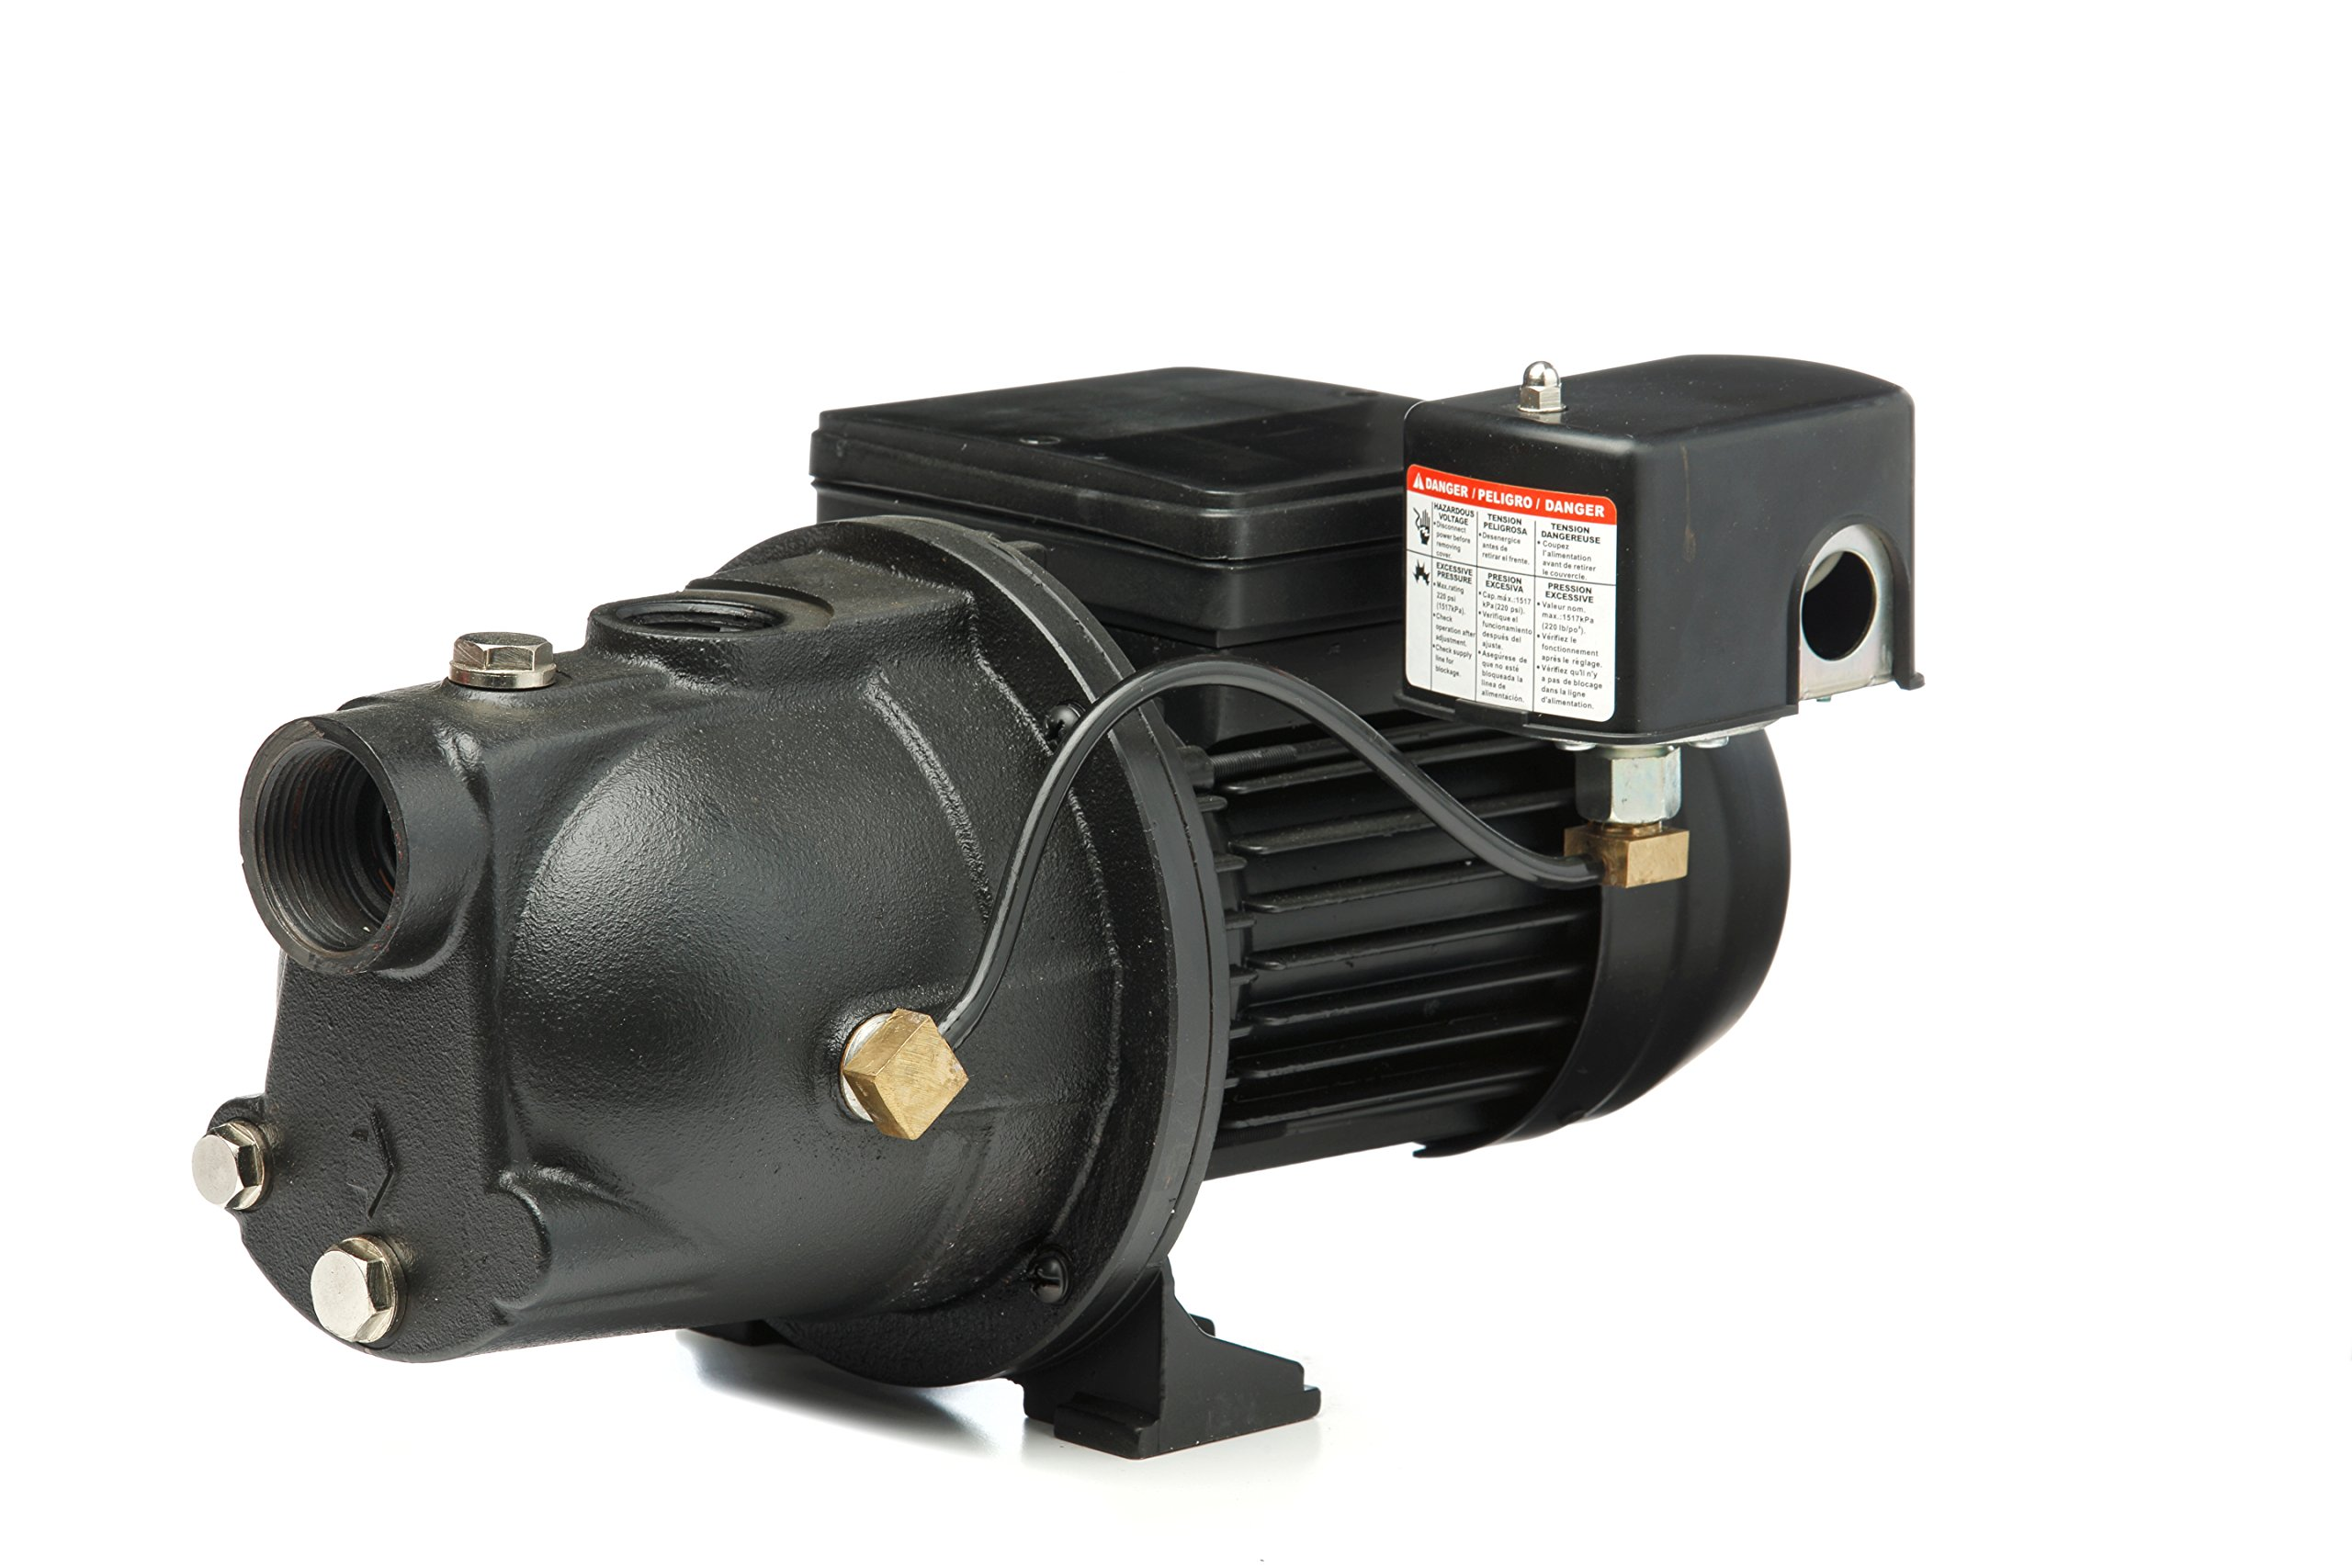 Red Lion PWJET50 Cast Iron Shallow Well Jet Pump Wells up to 25 Feet by Red Lion